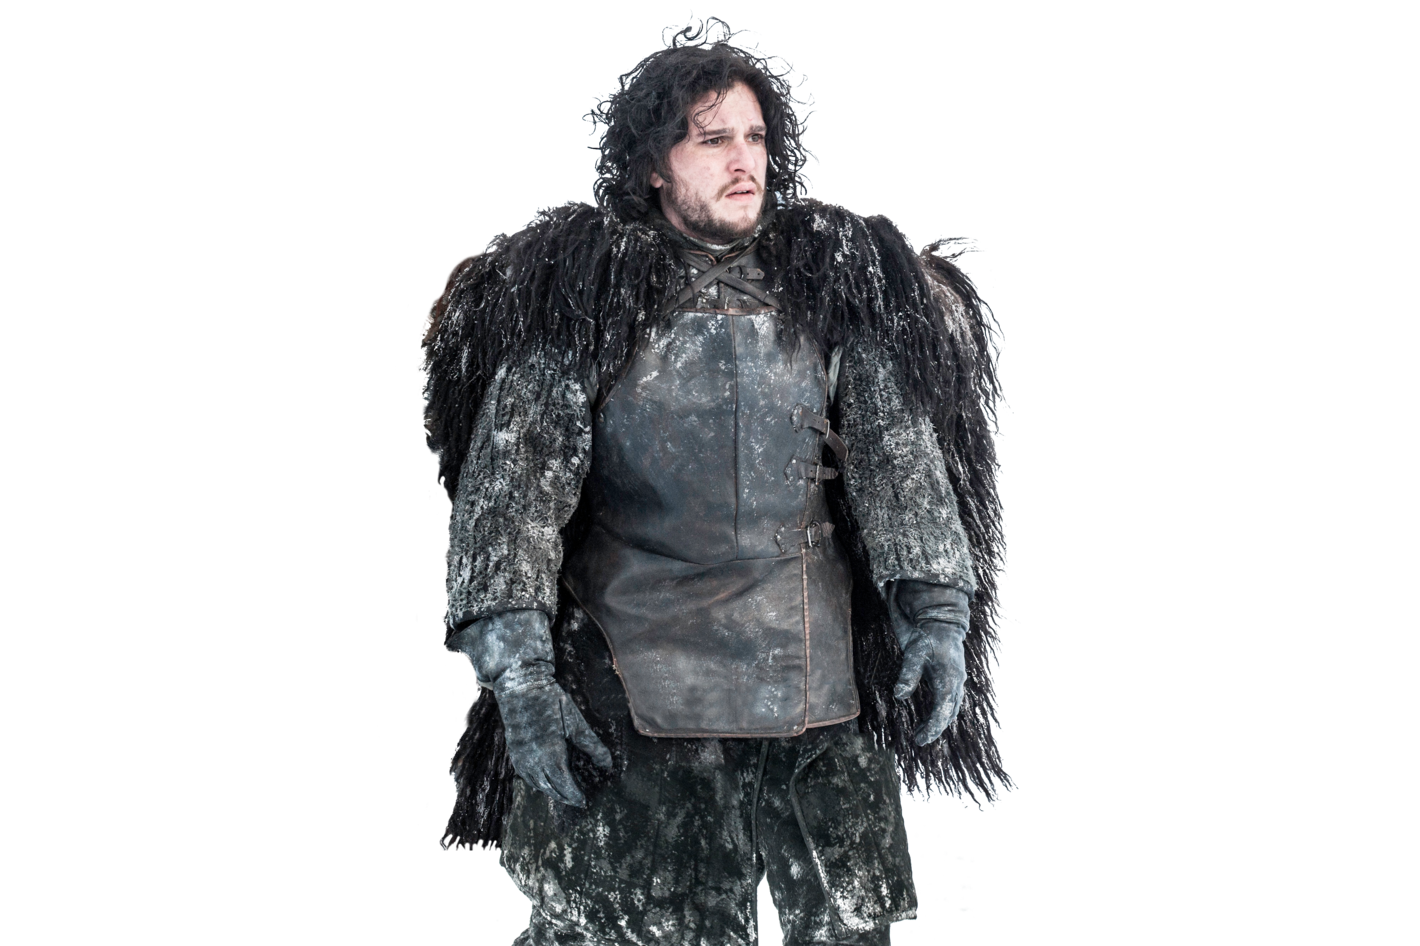 Kit Harington PNG Image-Kit Harington PNG Image-2